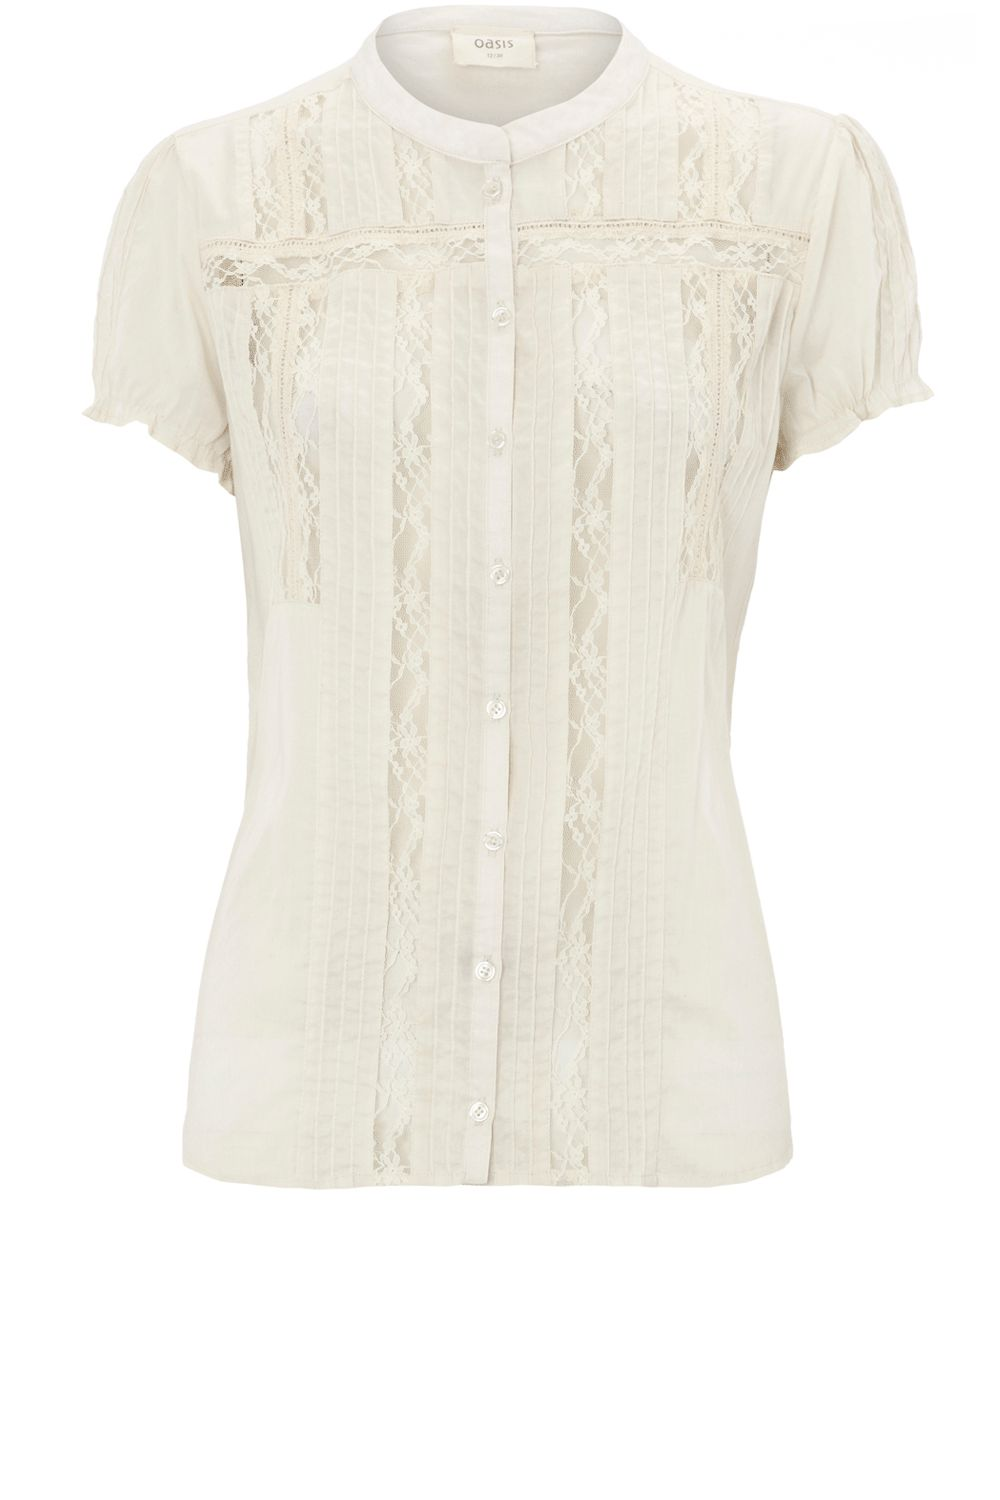 Oasis Crochet trim blouse - Natural product image